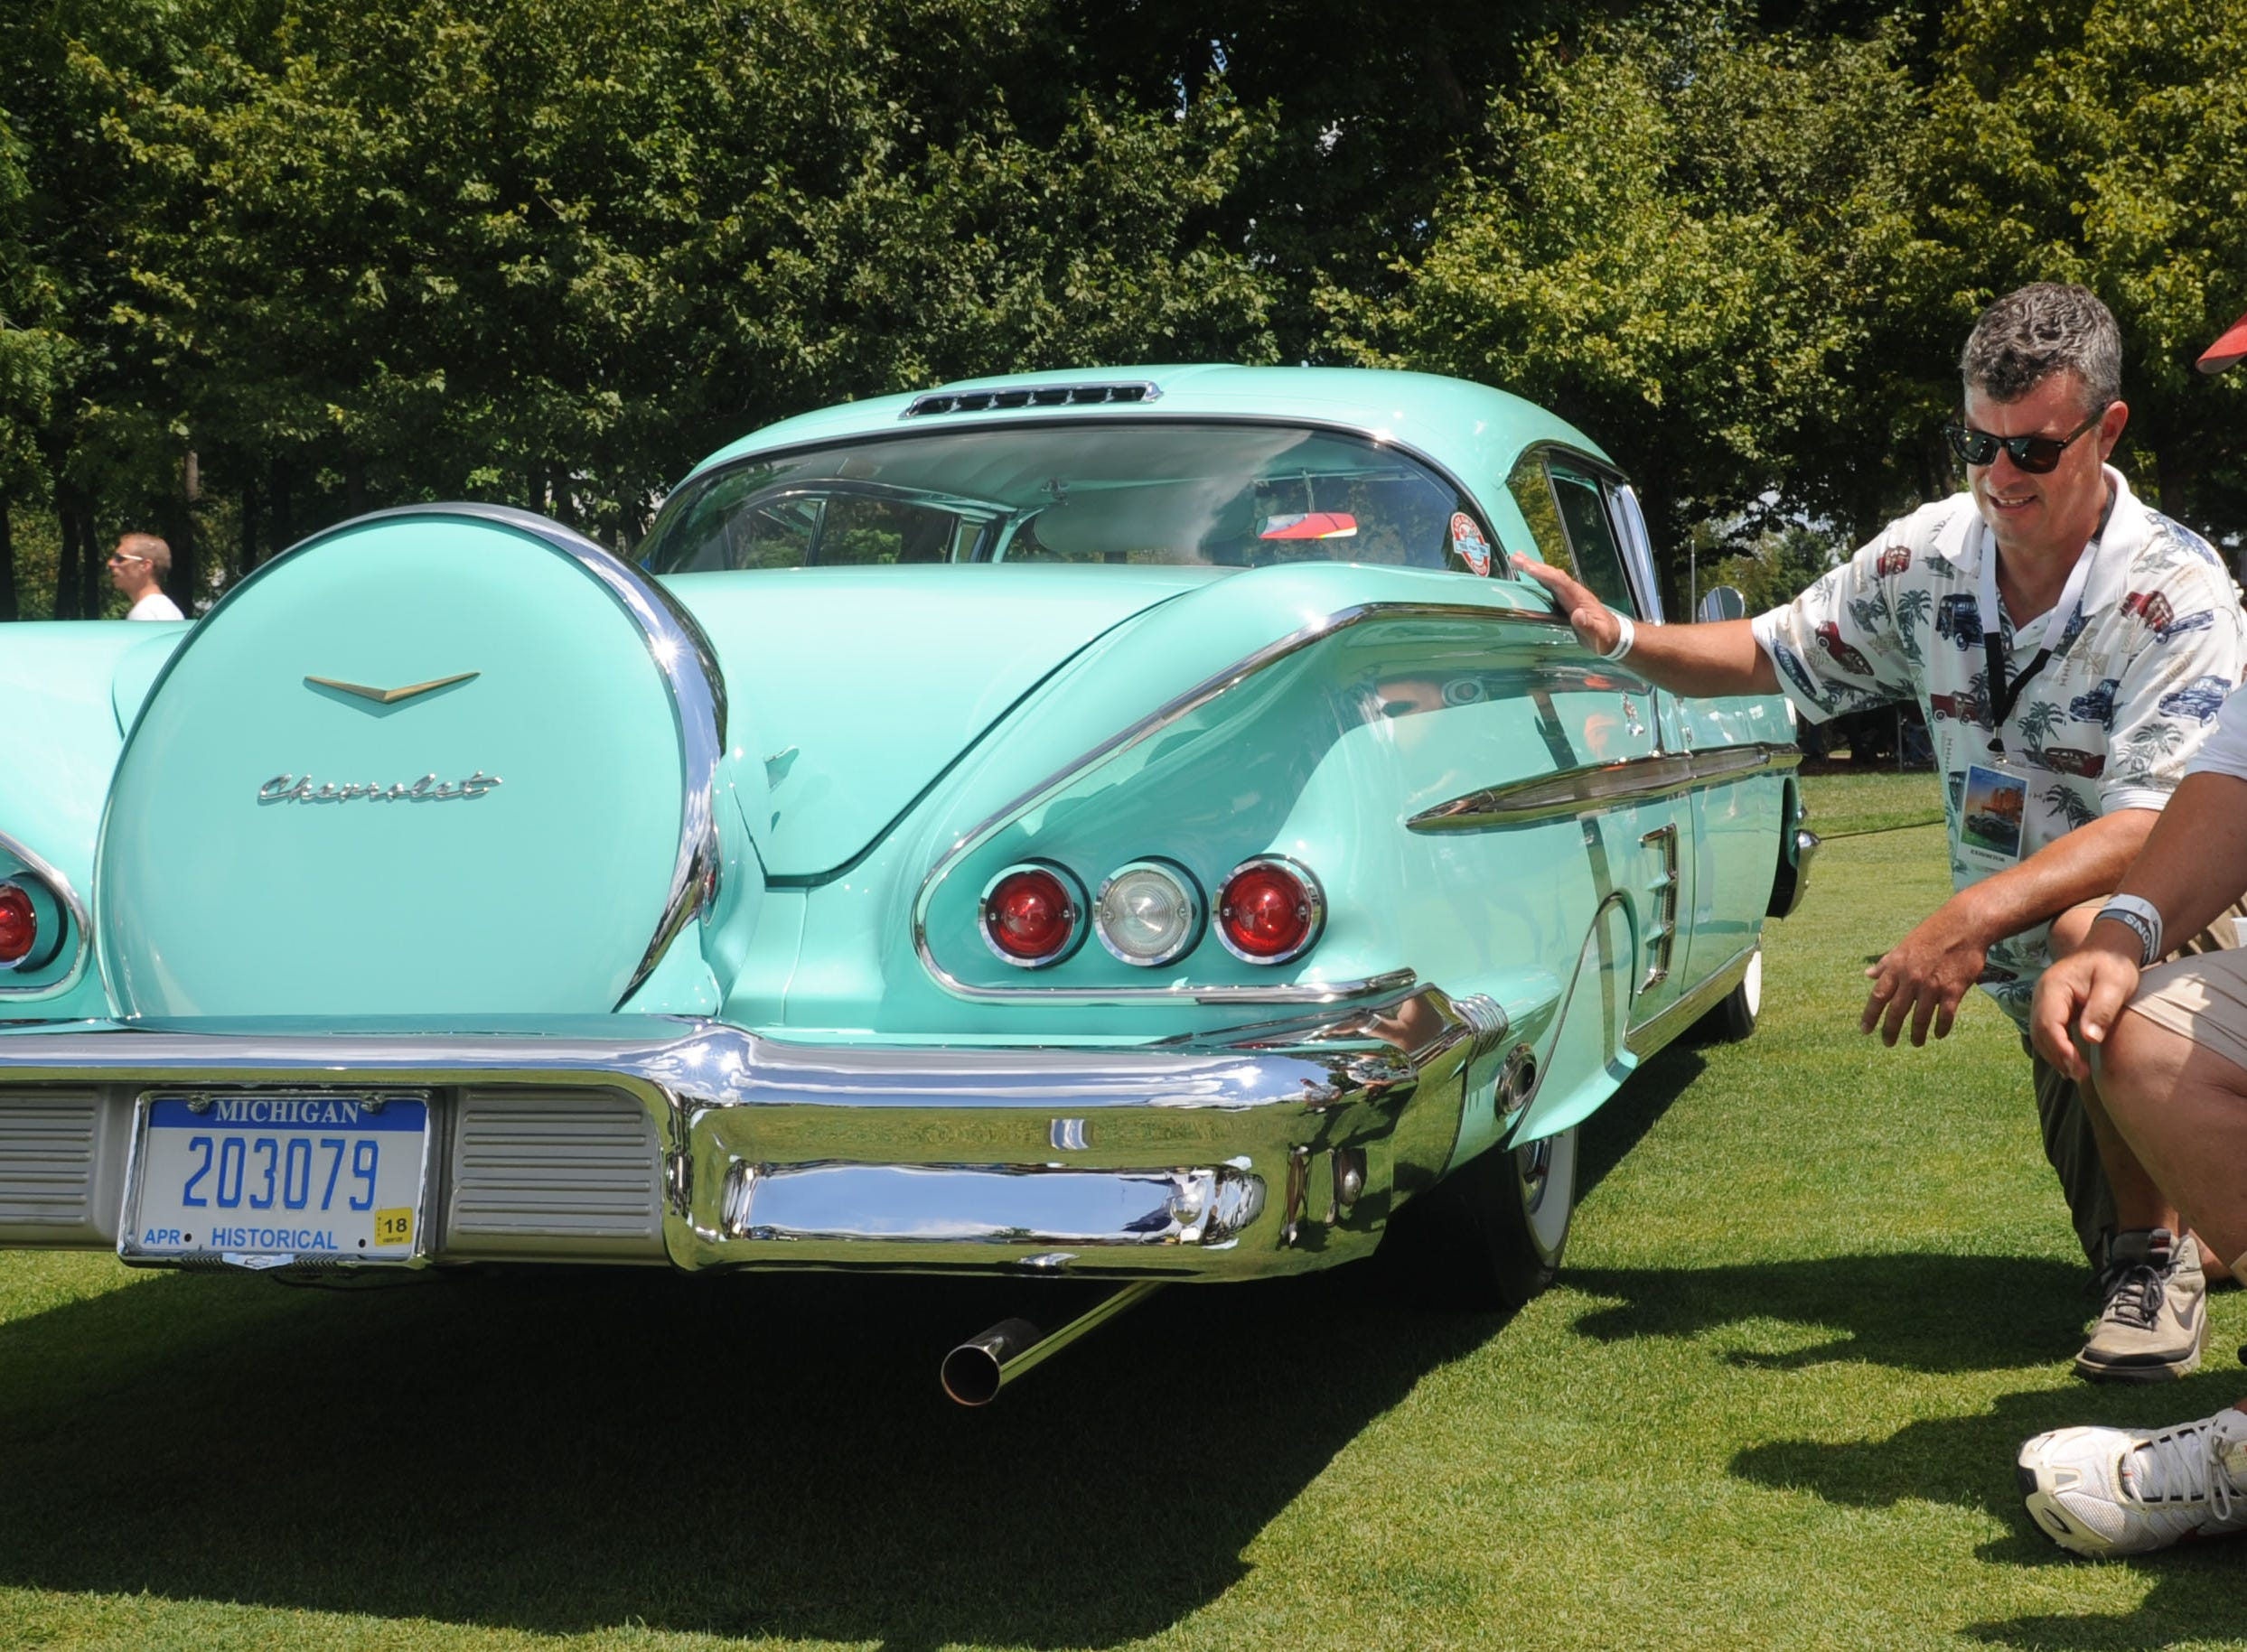 Kurt Machacek and his father Bob Machacek, of Farmington Hills, with their 1958 Chevrolet Impala during the Concours d'Elegance at St. John's in Plymouth.